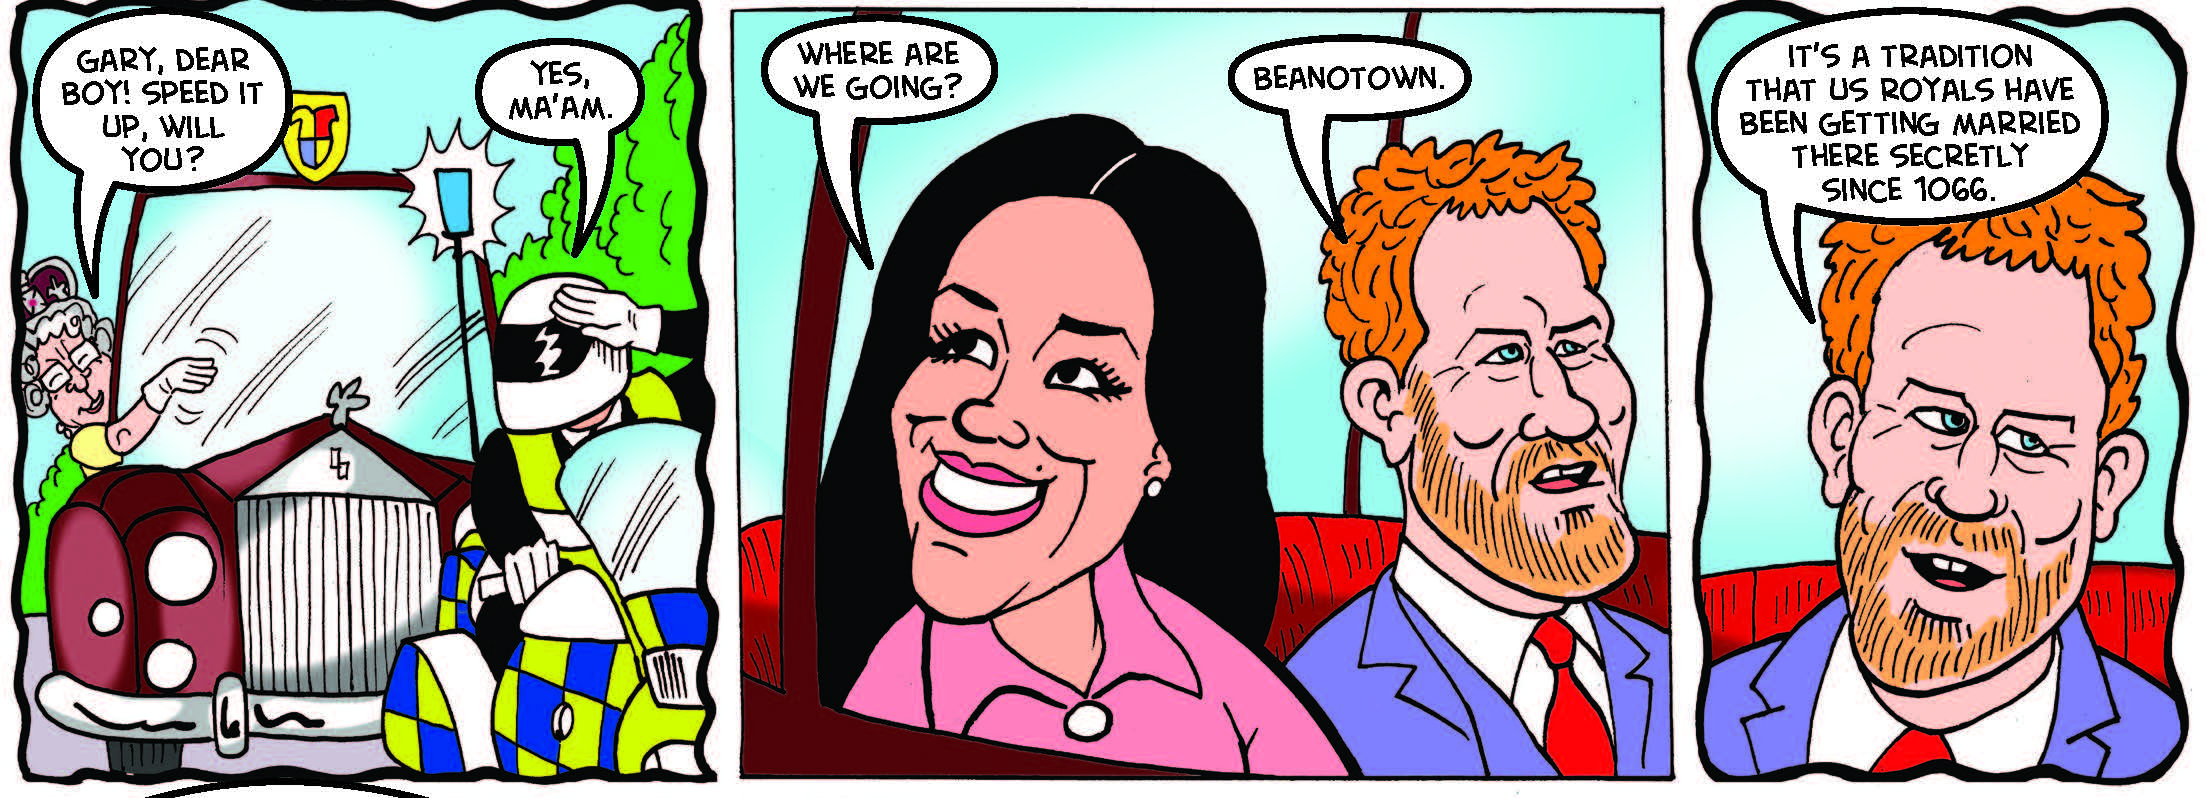 Beano 3935 - Royal Wedding Rumble 1